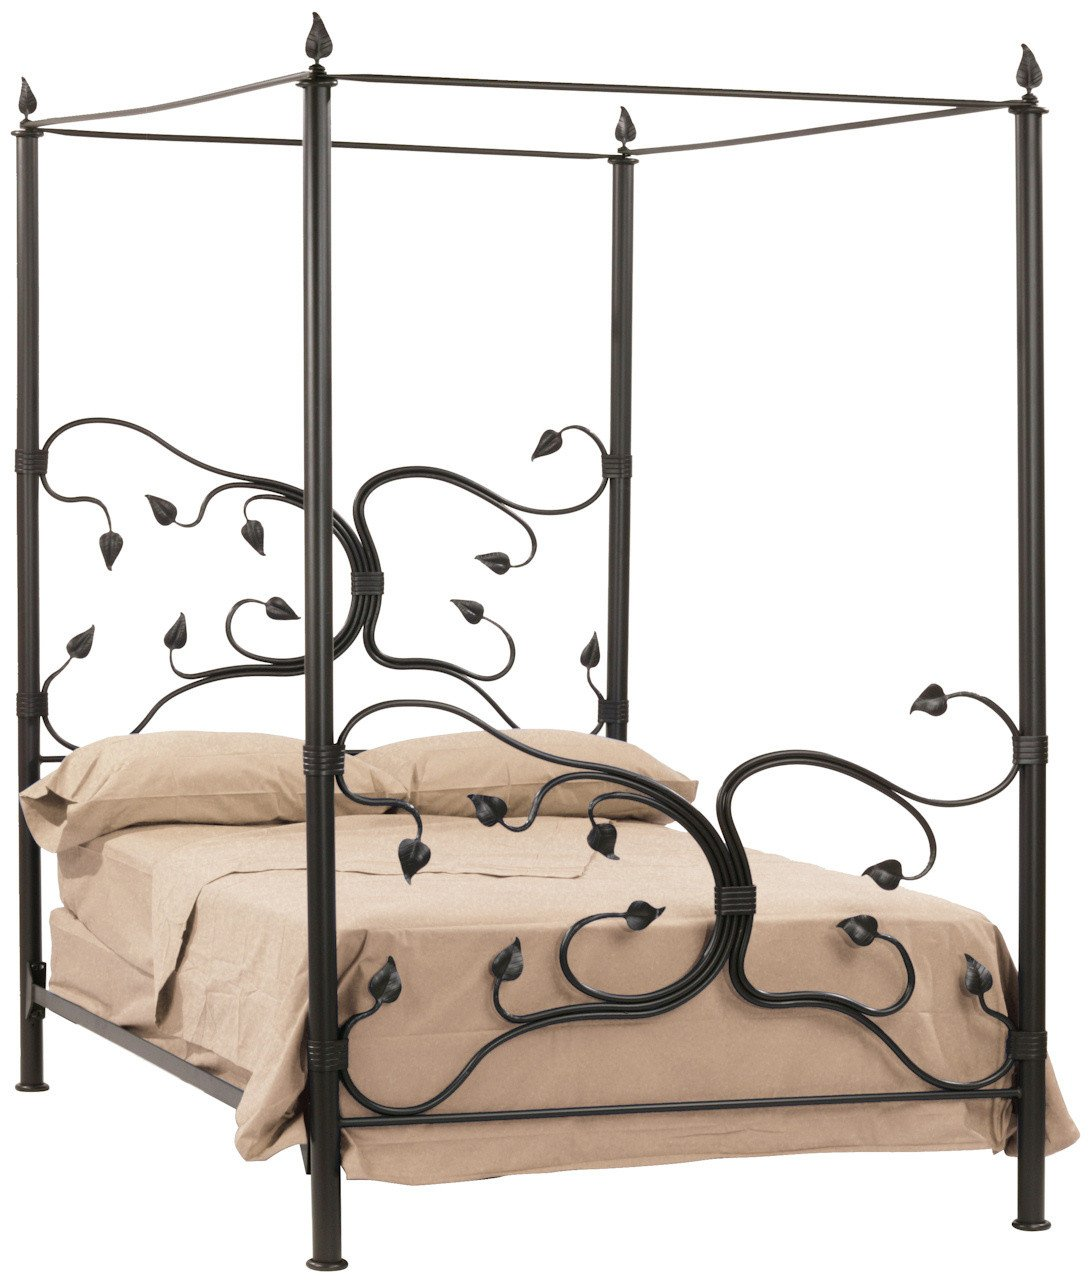 Isle Canopy Queen Bed 948 Product Photo